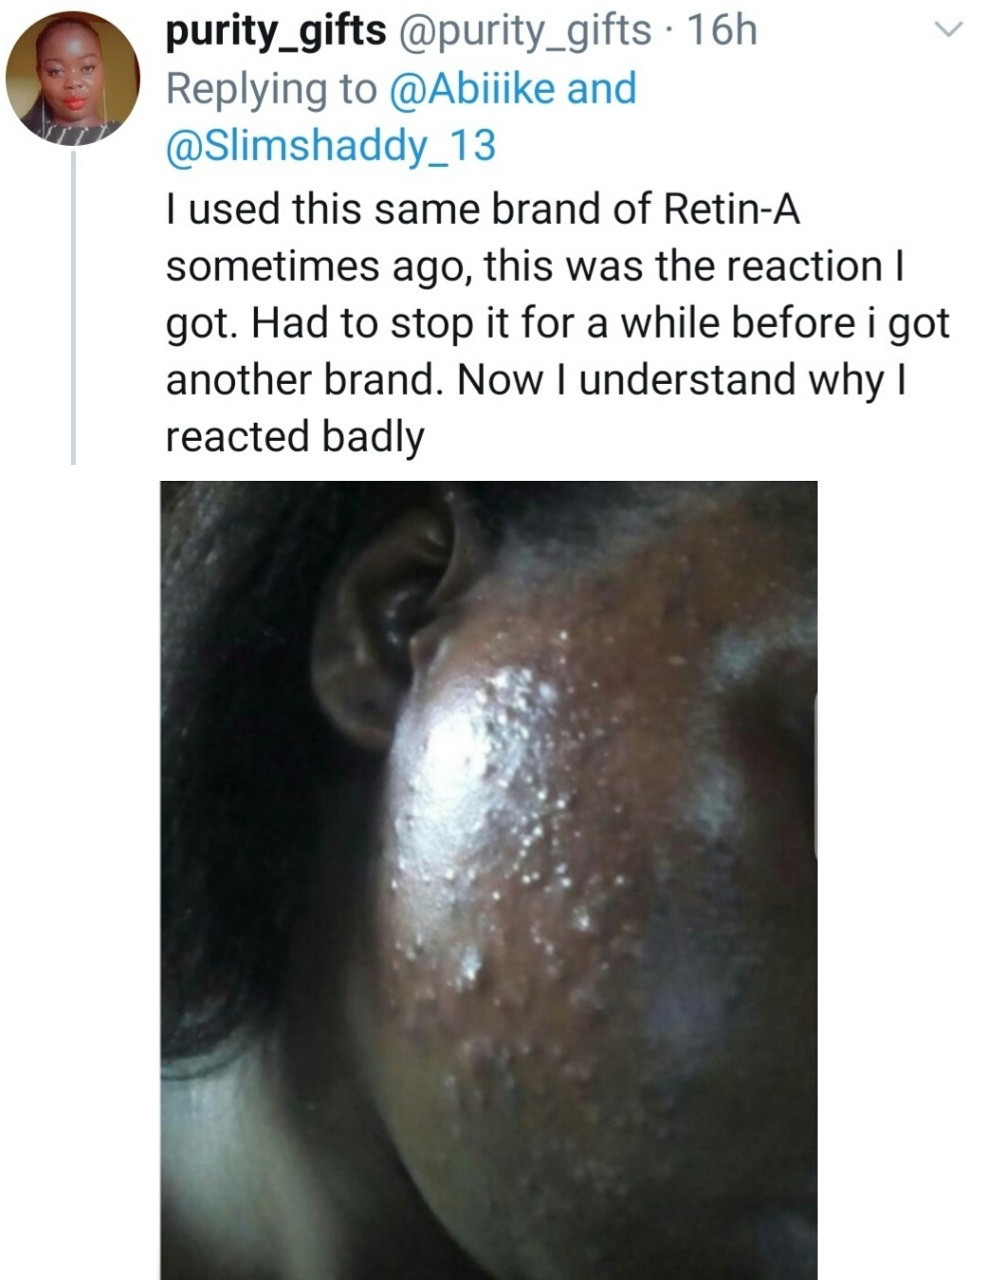 Pharmacist raises alarm after discovering expired ointment disguised as a different product with new expiry date (photos/video)